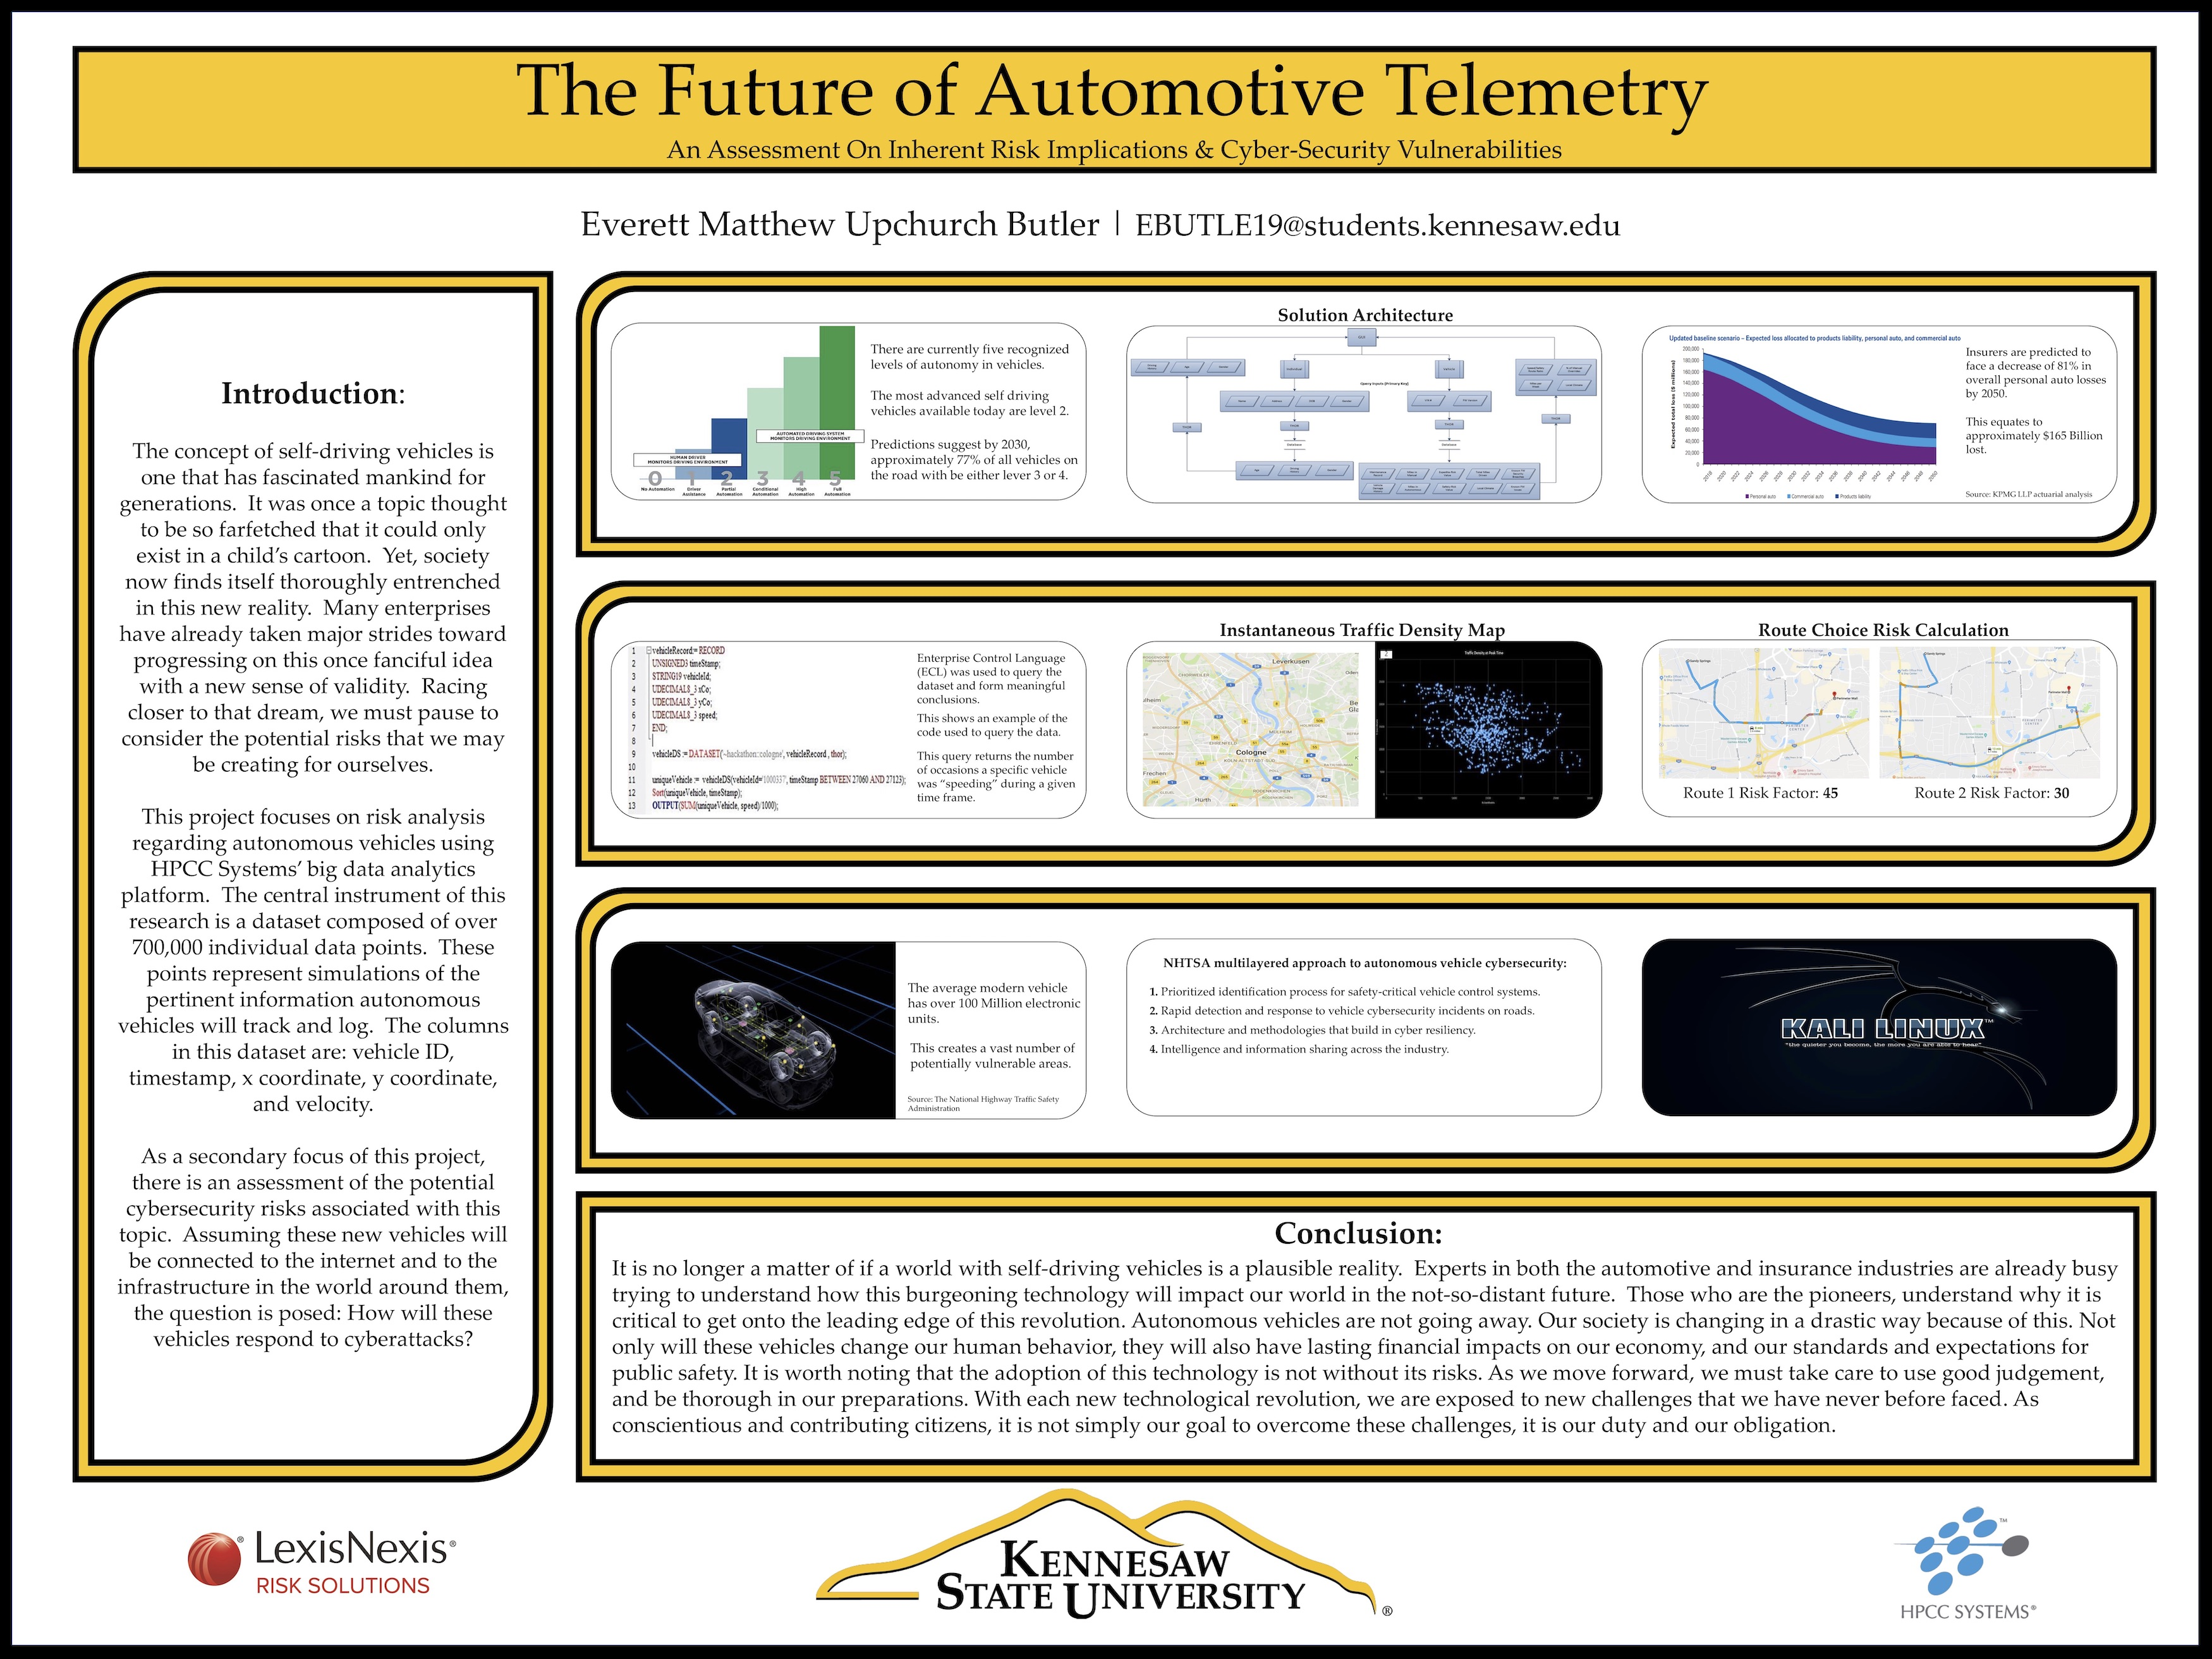 Everett Matthew Upchurch Butler - The future of automotive technology